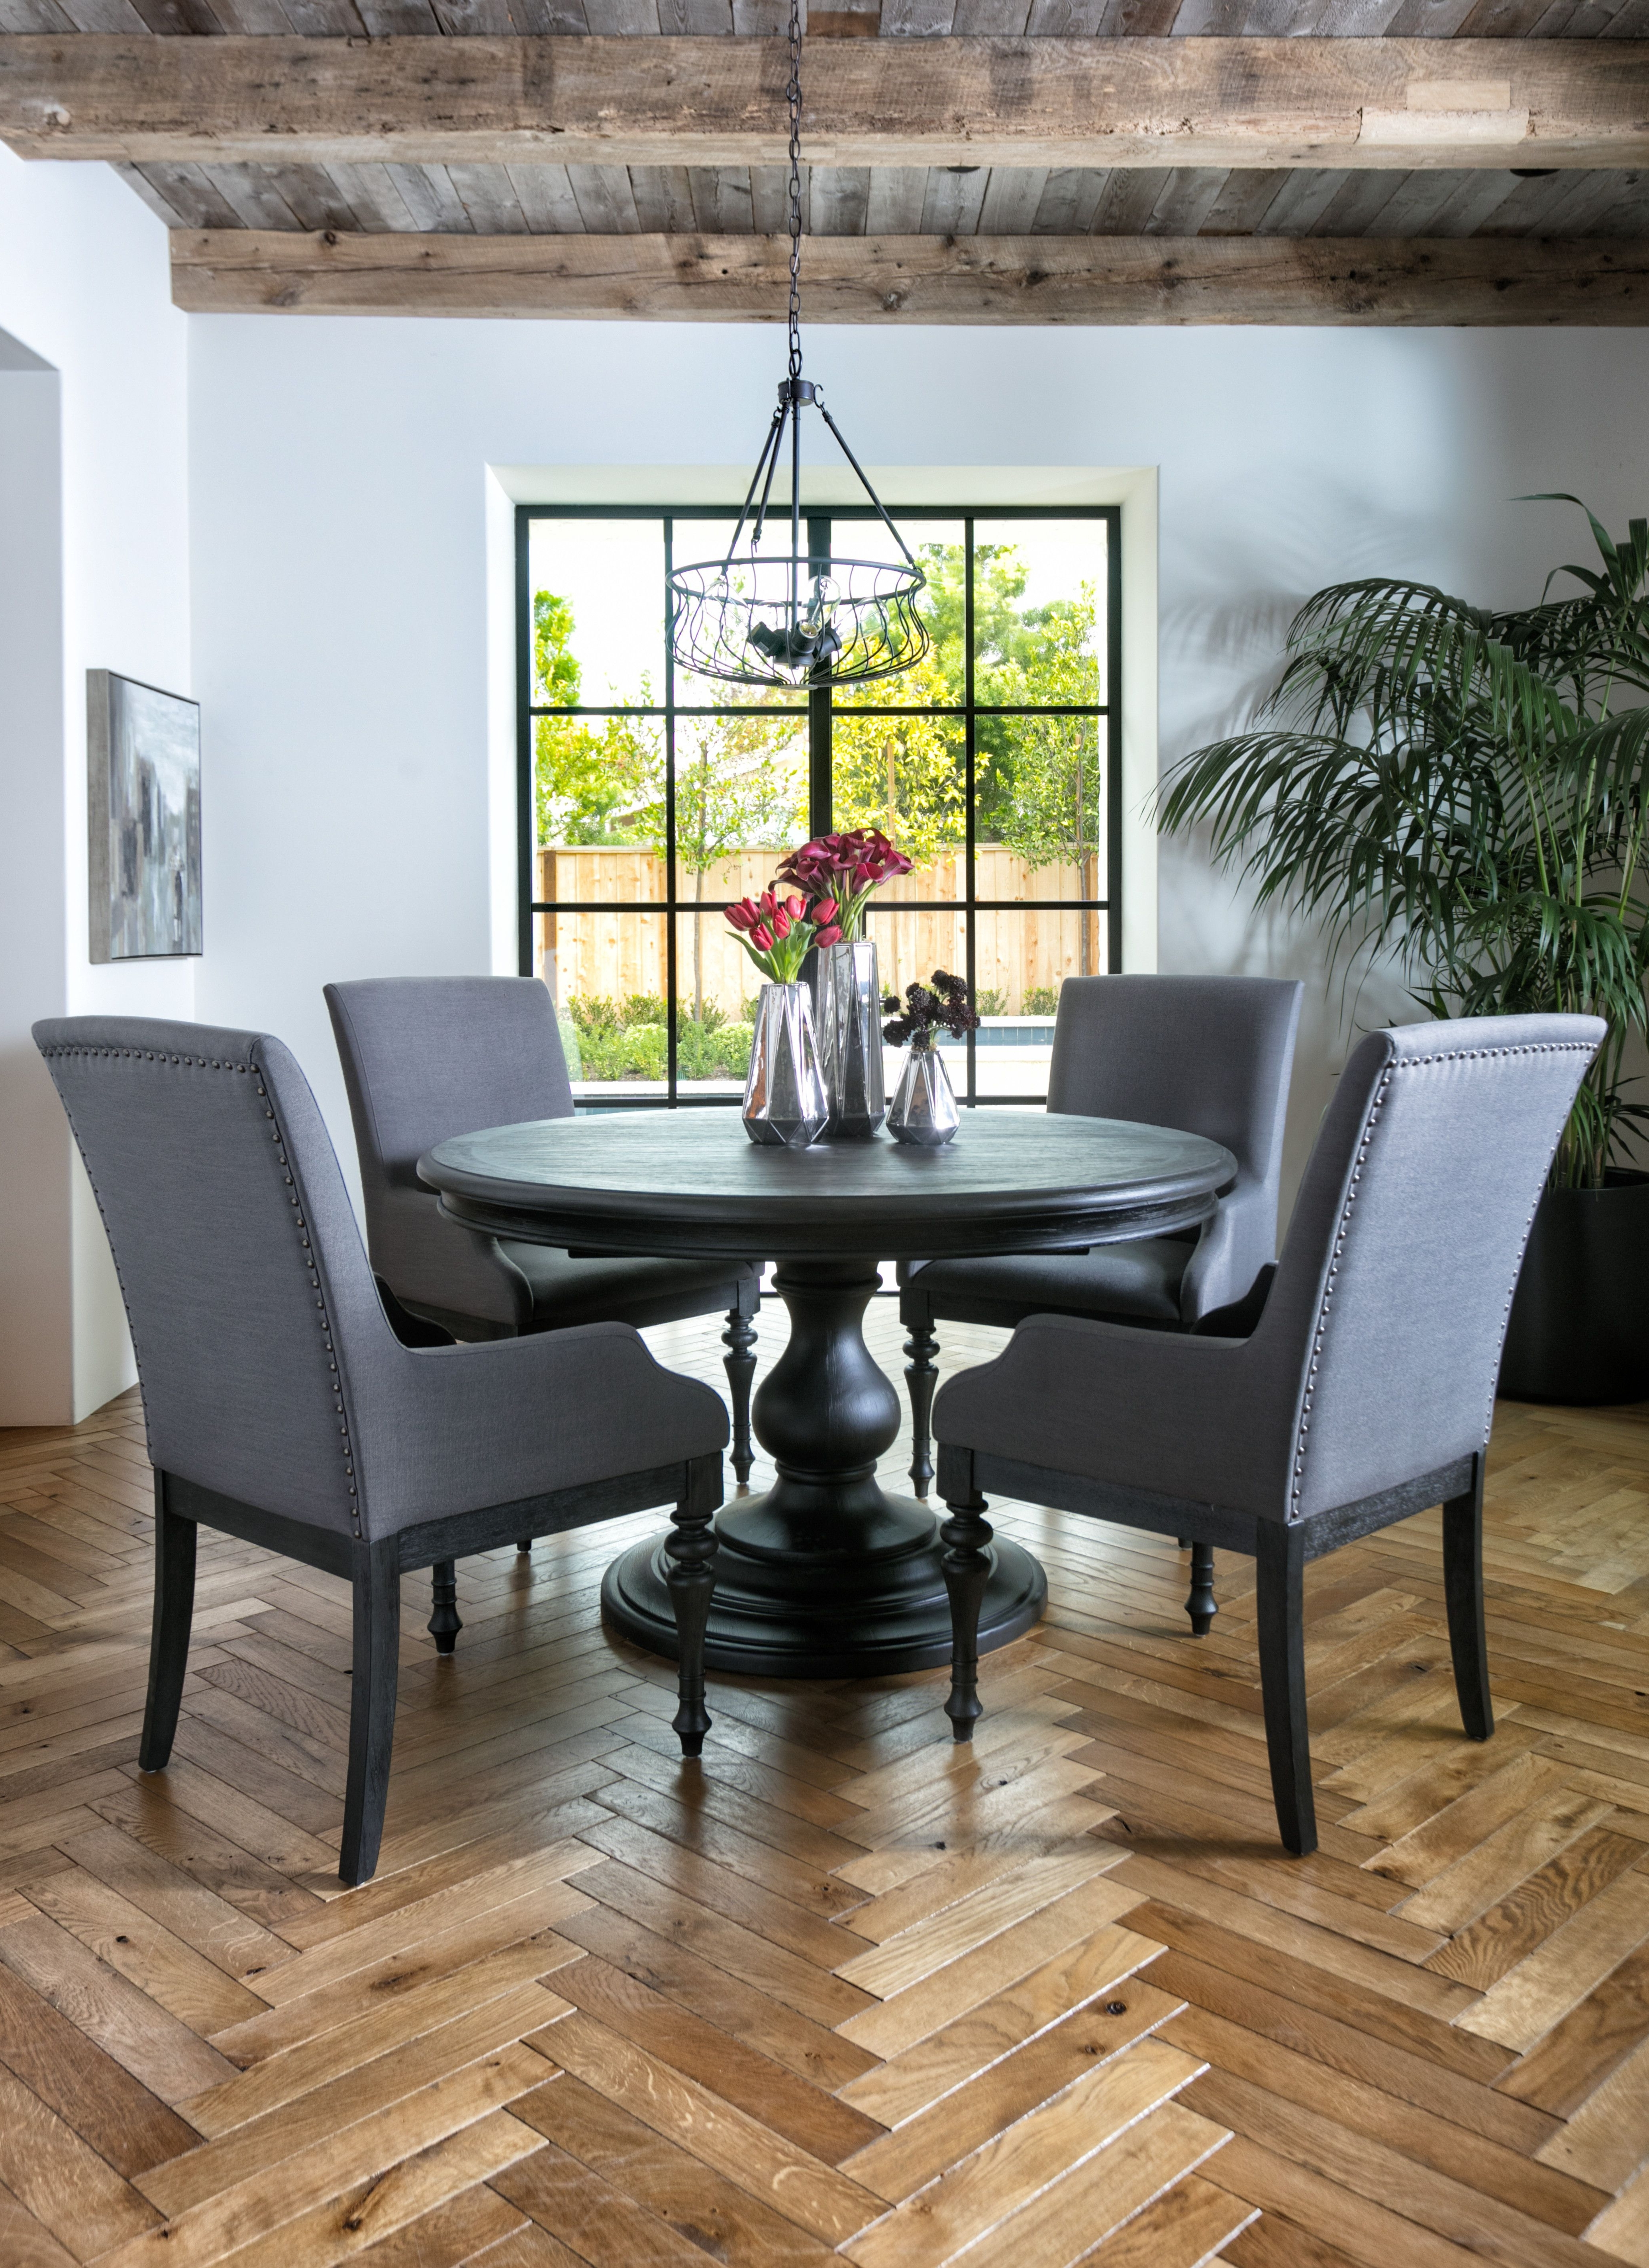 Caira Black 5 Piece Round Dining Sets With Upholstered Side Chairs With Fashionable Caira Black 5 Piece Round Dining Set With Diamond Back Side Chairs (View 1 of 25)